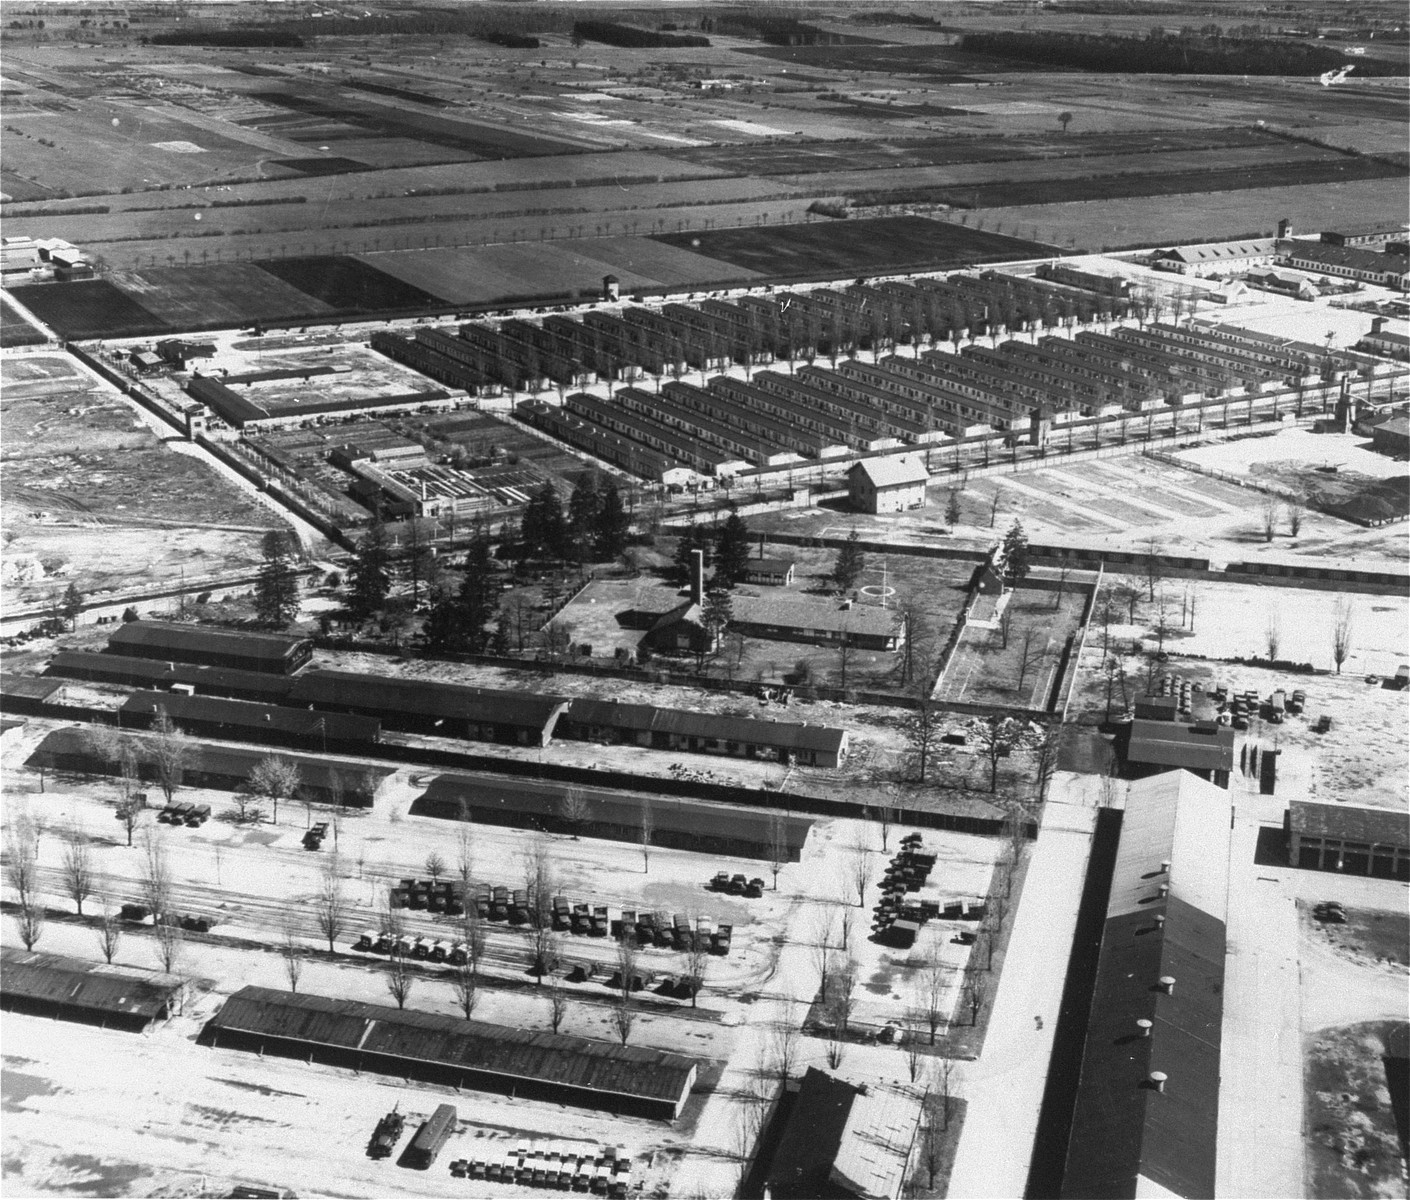 Aerial view of the Dachau concentration camp.